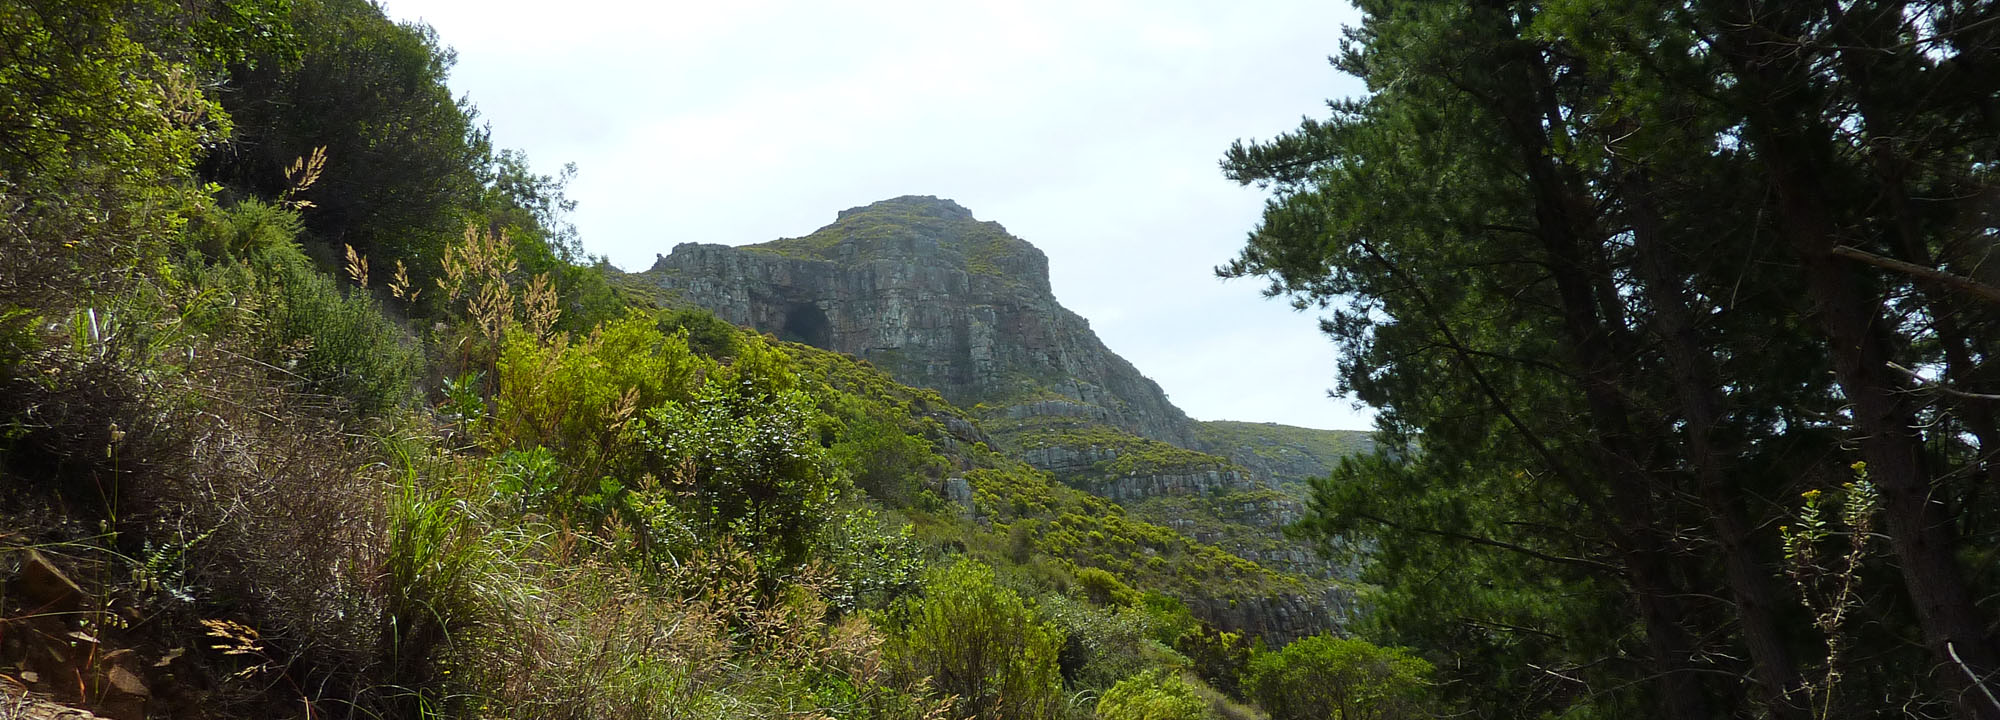 Table Mountain Elephant's Eye hike